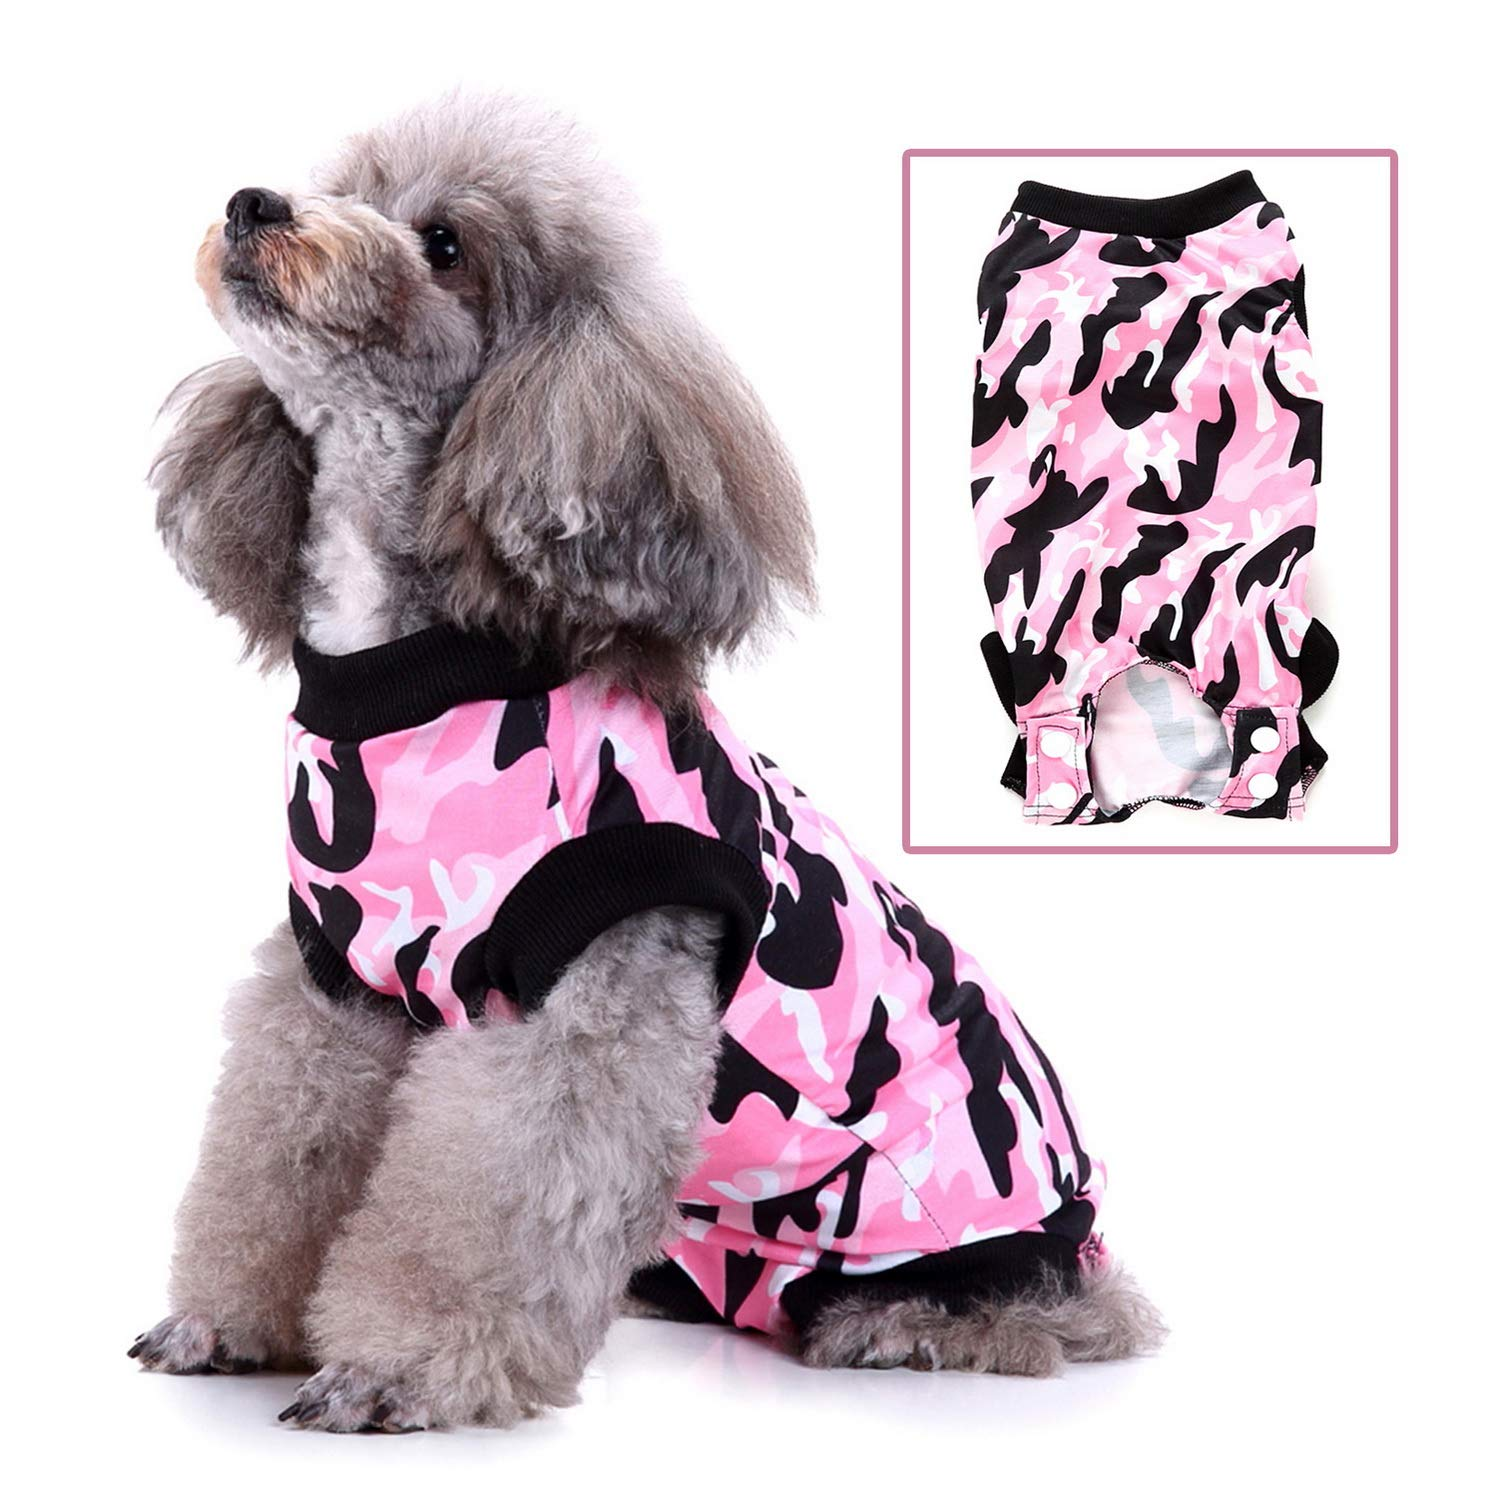 Zunea Pet Dog Cat Recovery Suit for After Surgery Cone Alternative Camo Soft Cotton Injured Care Protection Puppy Clothes Skin Diseases Prevent Lick Weaning Suit for Female Male Small Dogs Pink M by Zunea